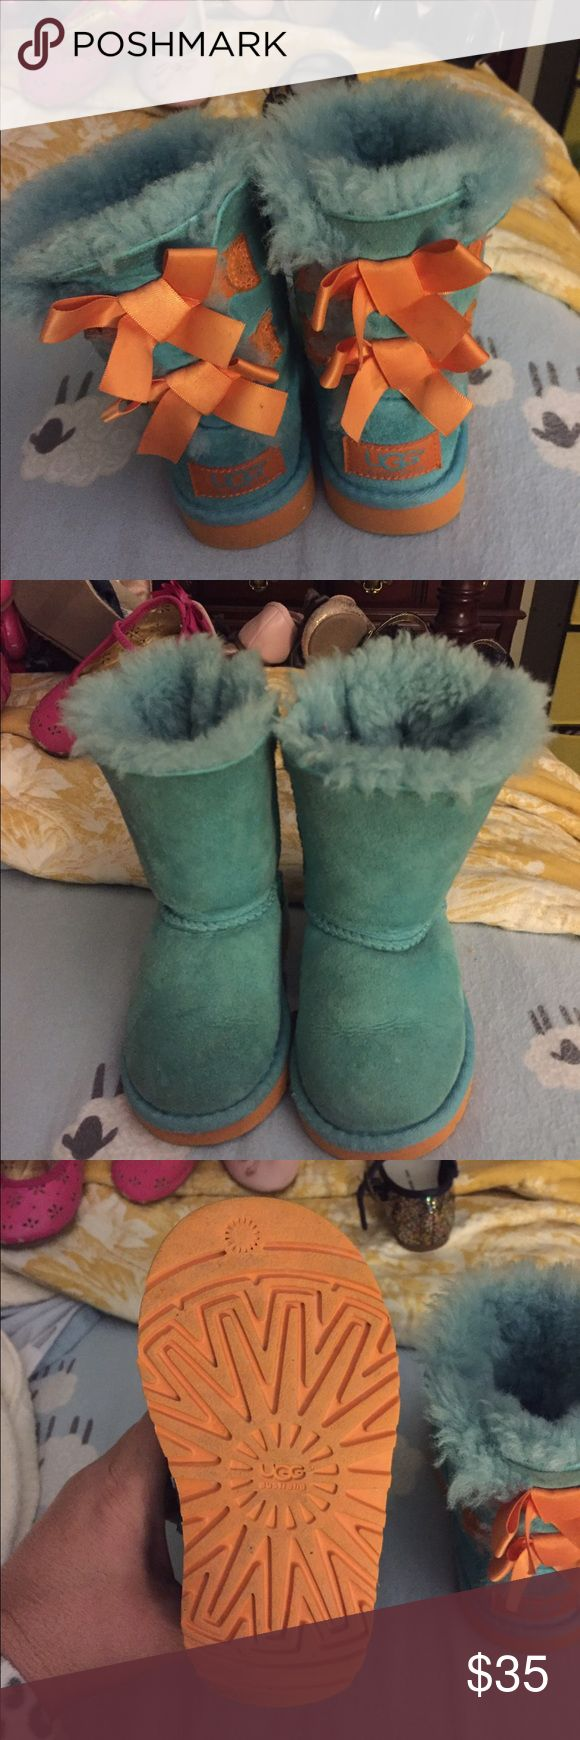 Childrens UGGs boots shearling Aqua orange lace 7 Adorable ugg boots size 7. My daughter loved these boots. They are very warm and brought so many compliments!! UGG Shoes Boots